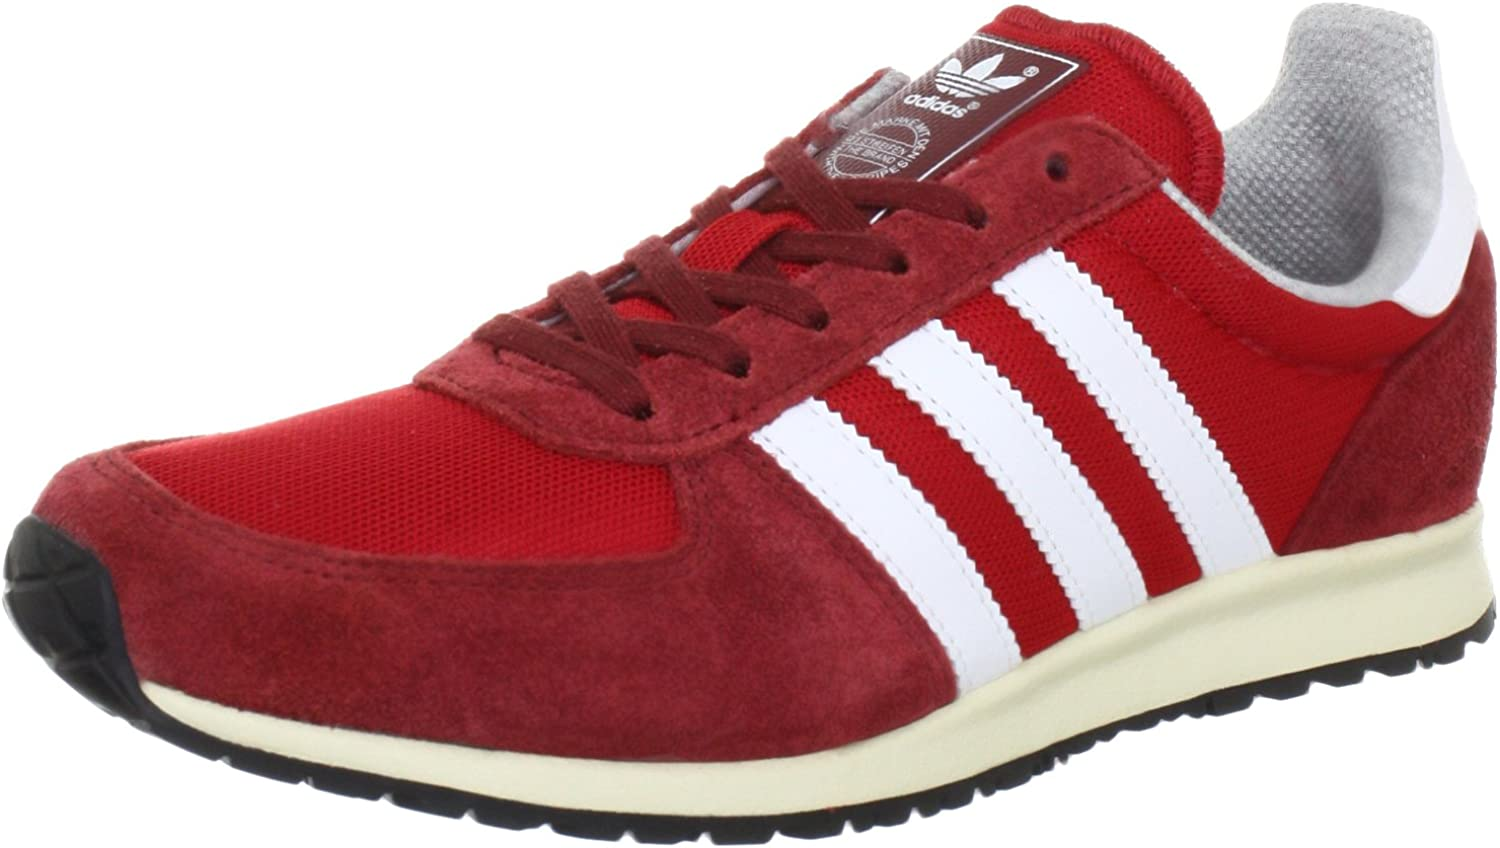 adidas Originals Adistar Racer, Baskets mode homme Rouge